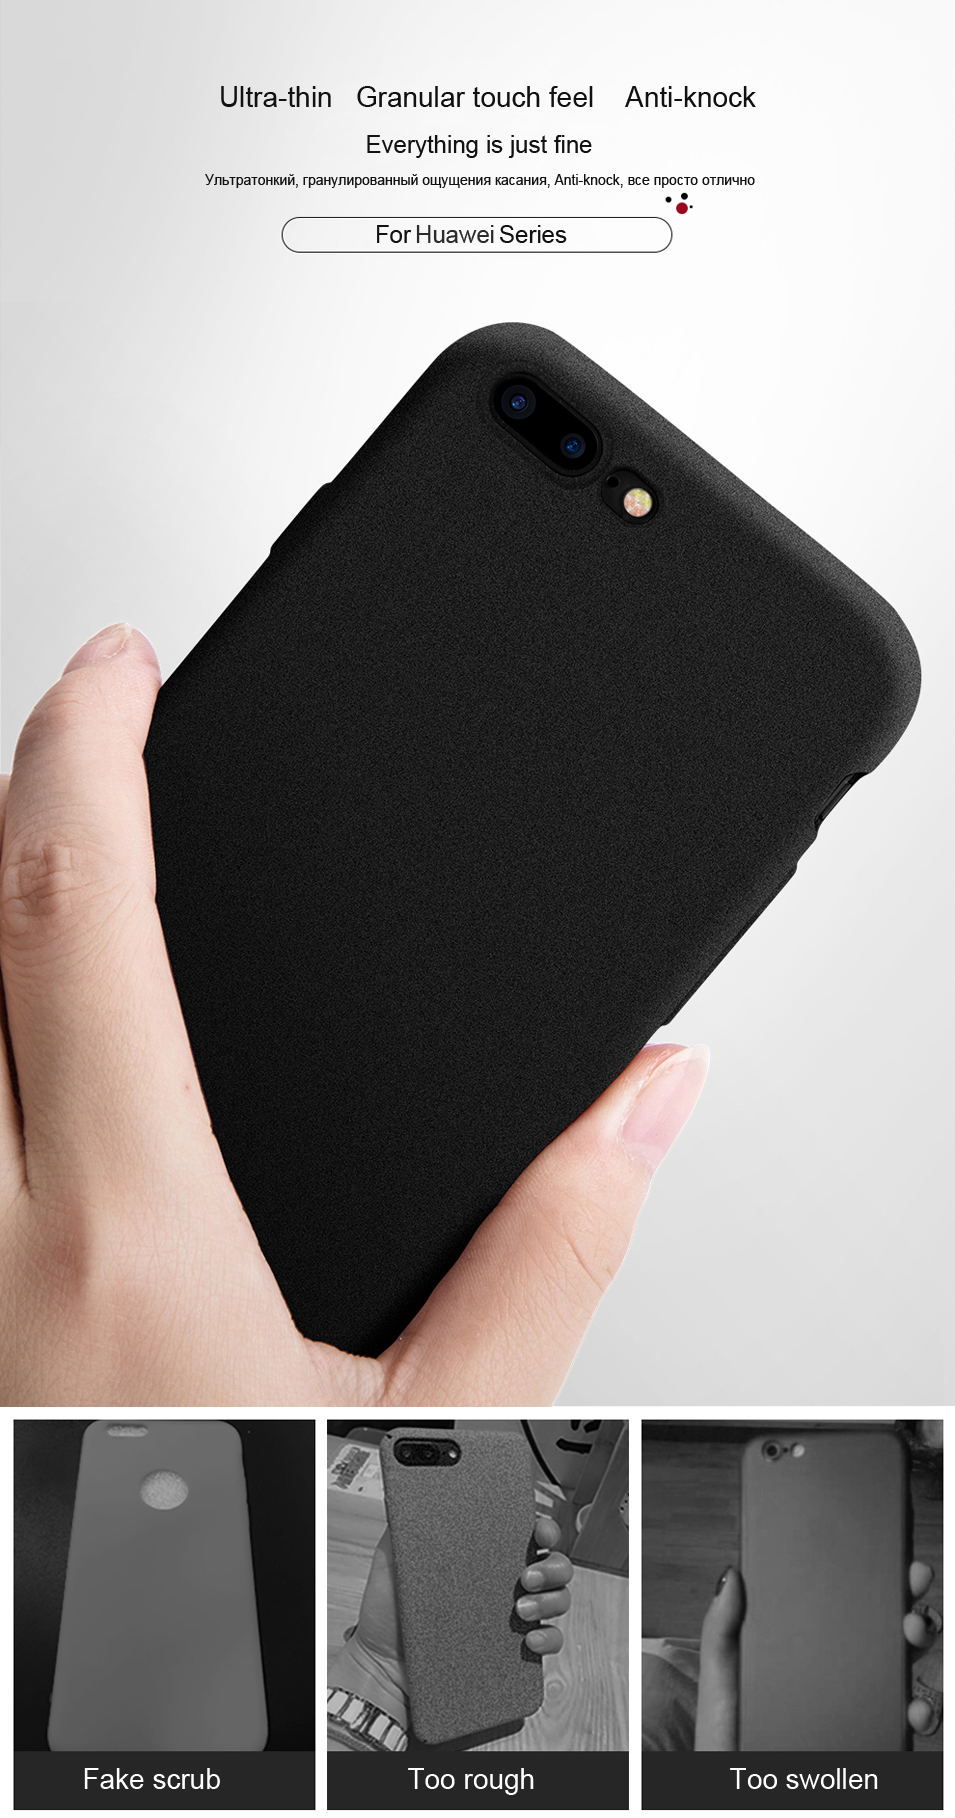 LECAYEE For Huawei Honor A7 Pro Phone Cases for Honor 8 9 10 Lite 7X 6C Pro 5A 6X View 10 Case Cover Matte Touch Soft TPU Bumper (9)